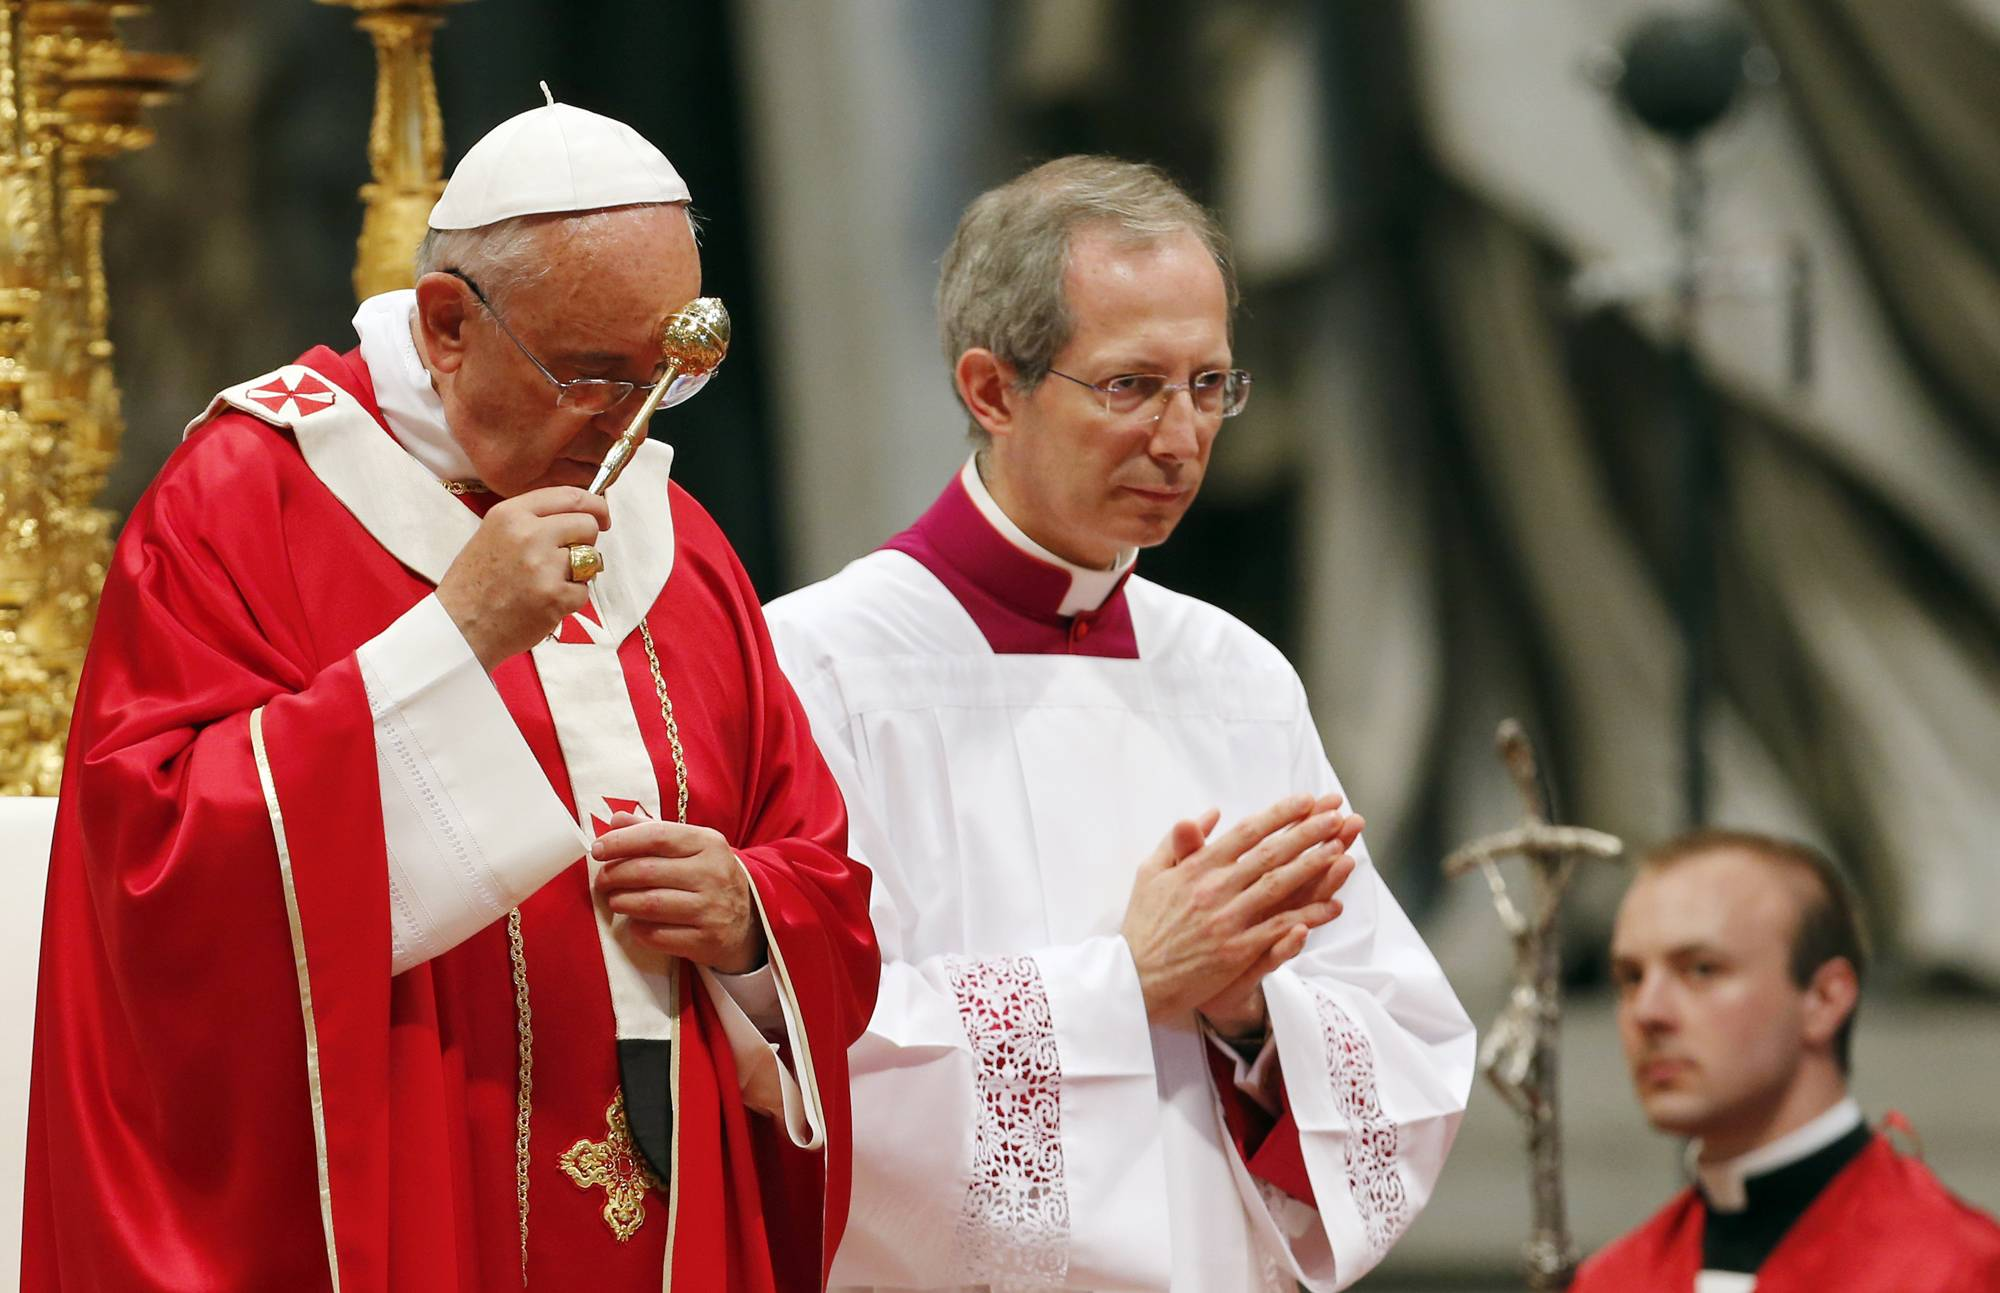 Pope Francis celebrates a Mass of Pentecost in St. Peter's Basilica Sunday at the Vatican.